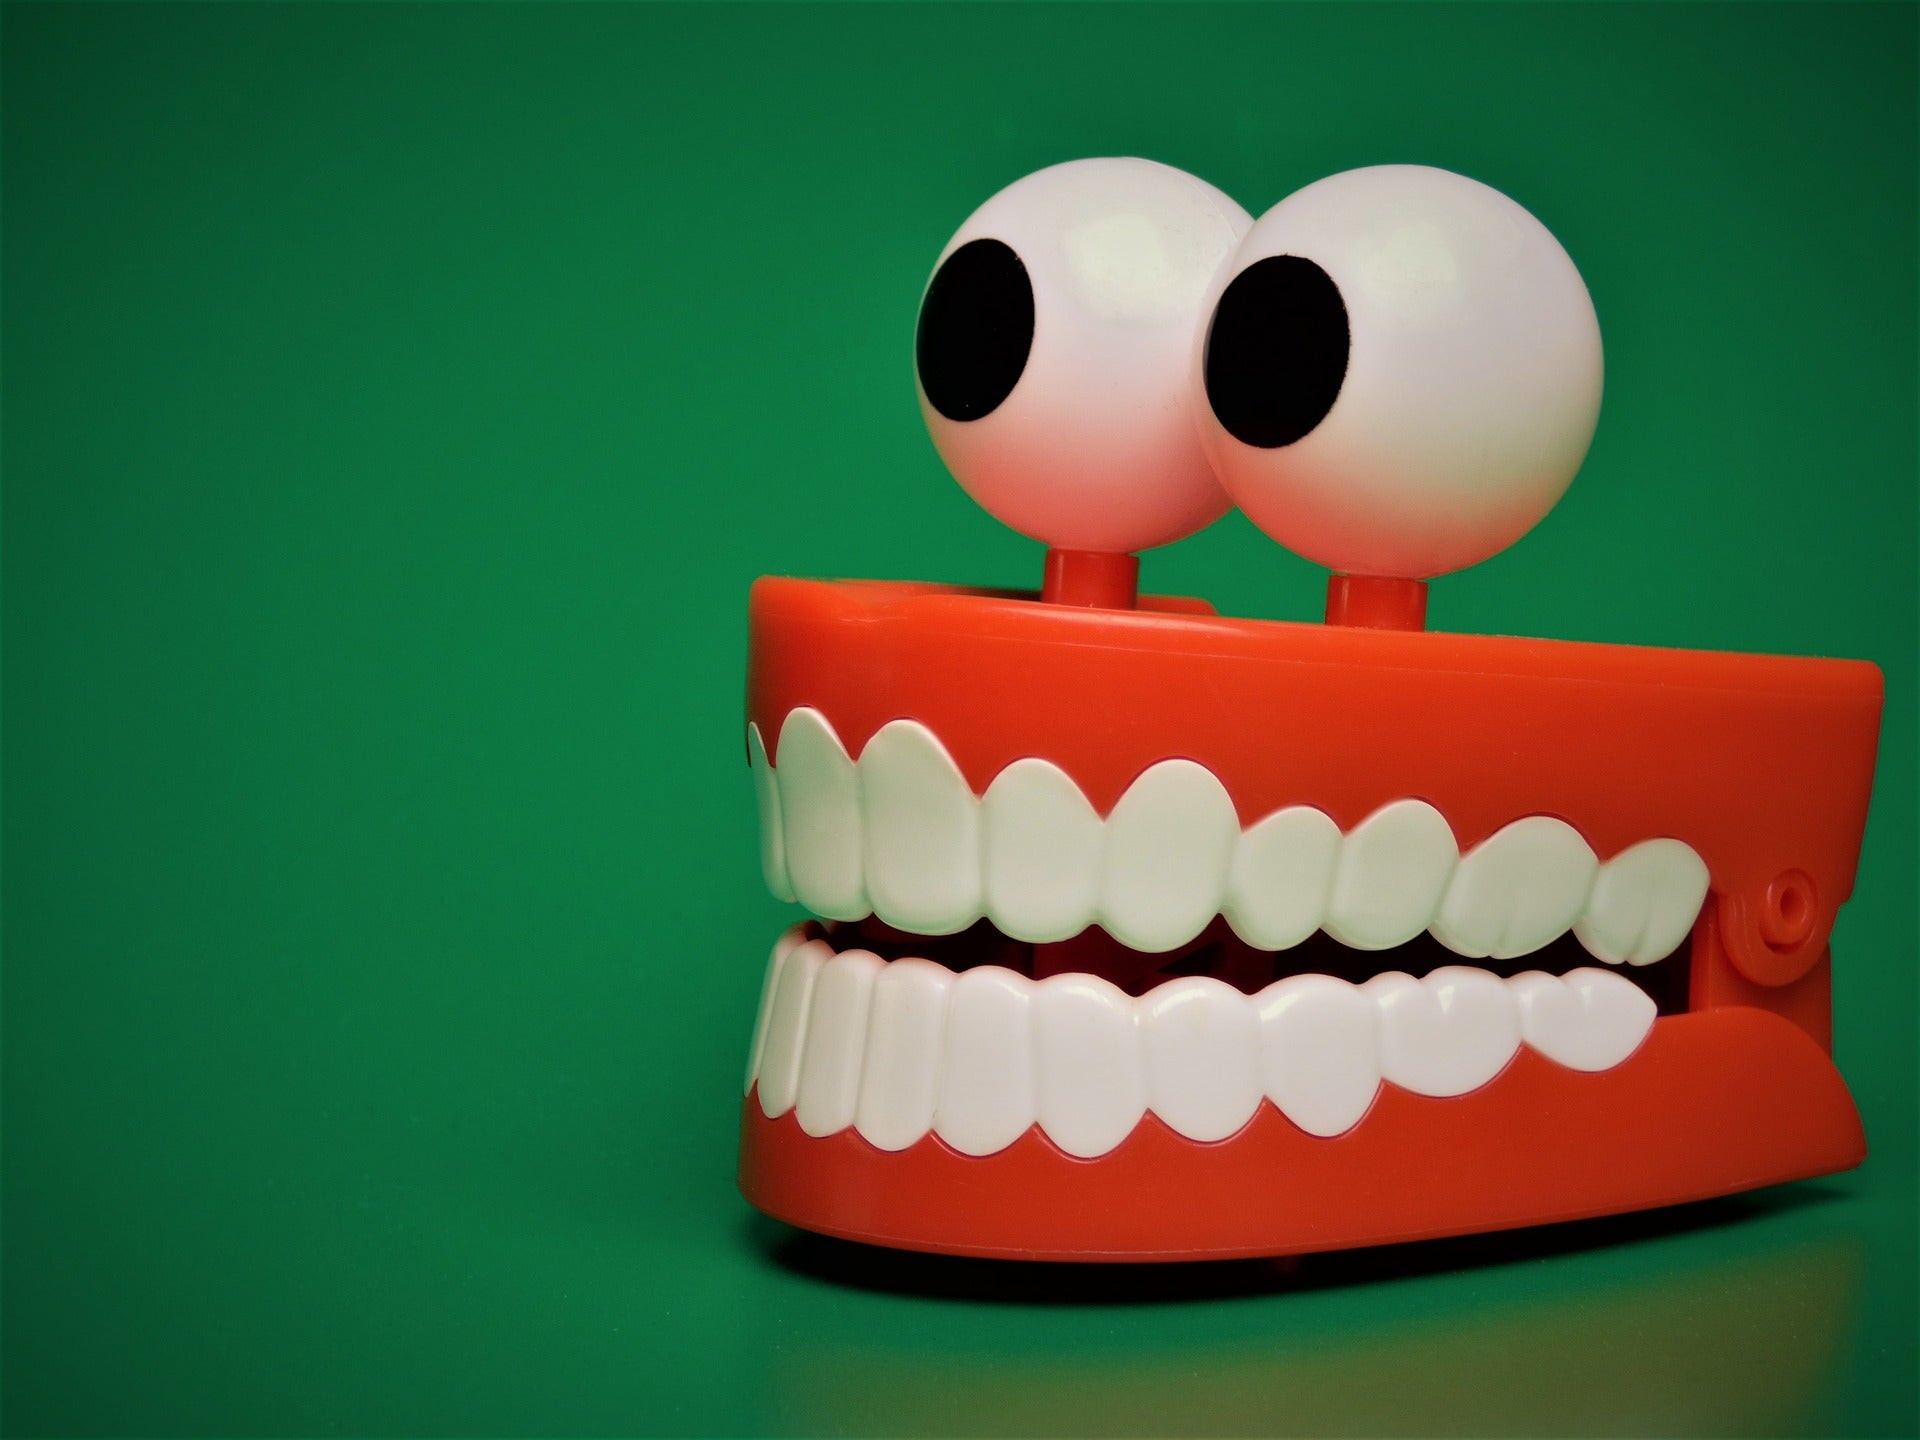 Toy teeth with eyes, for AutoBrush